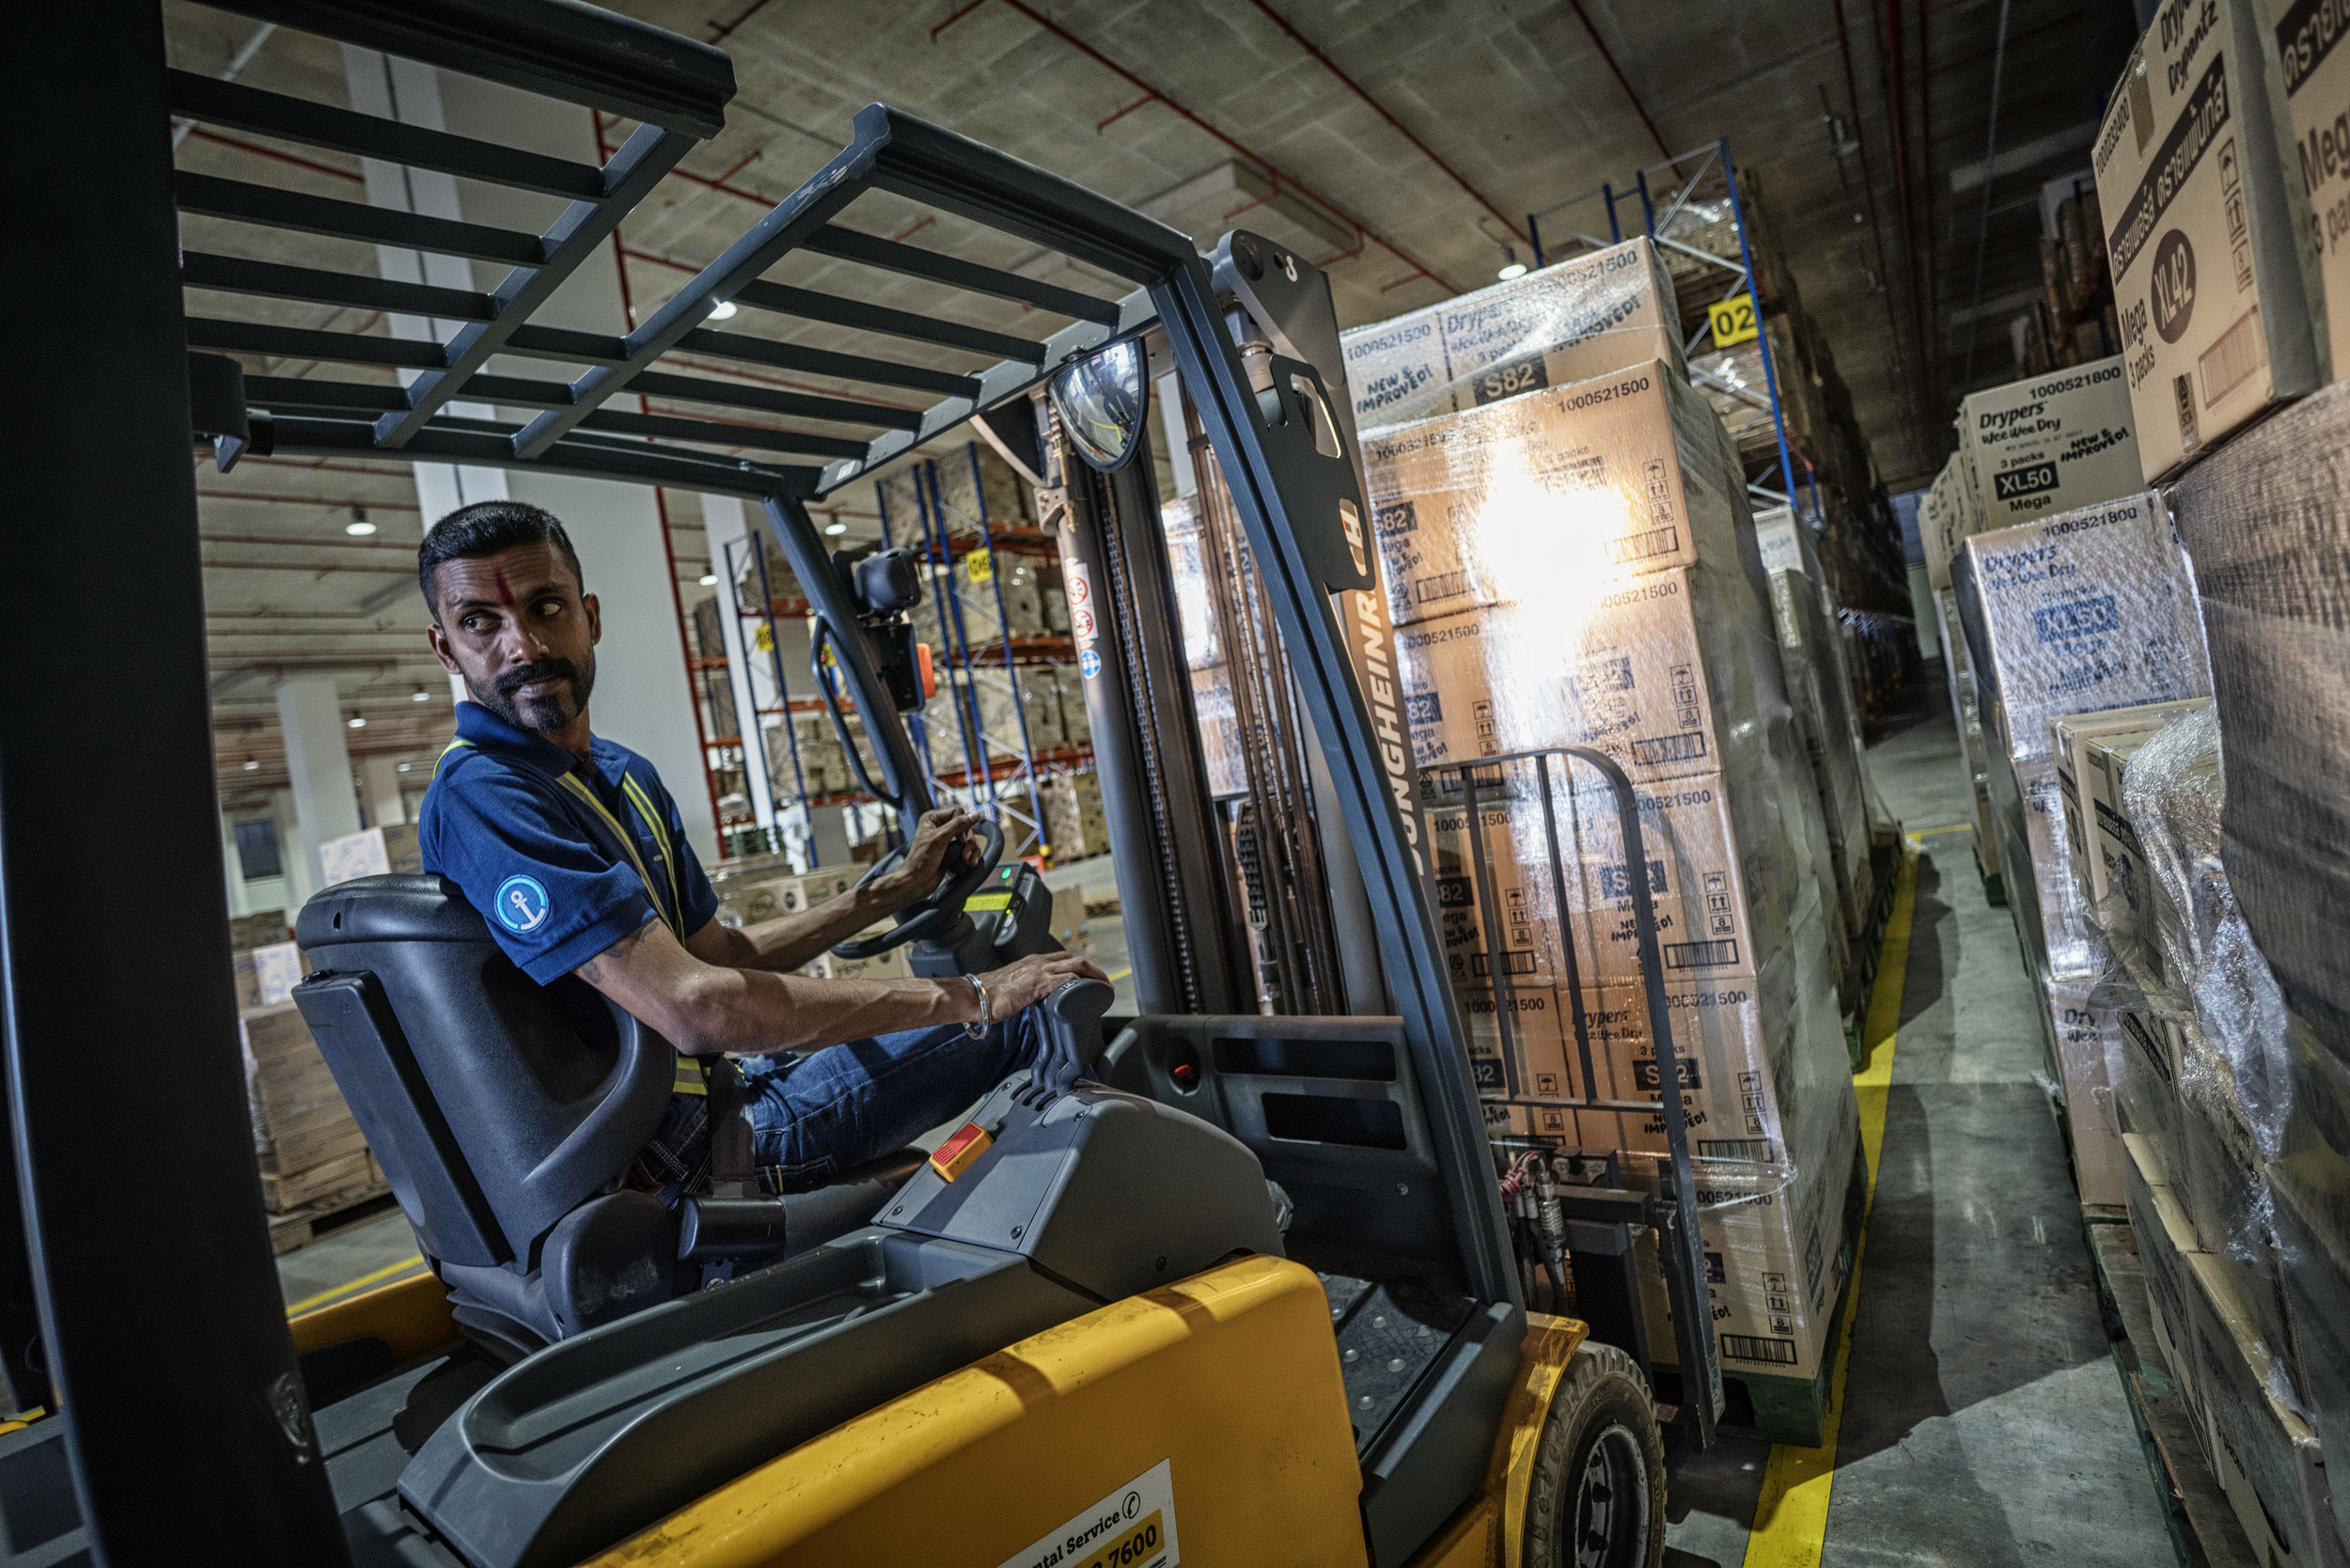 Forklift Operator (A7RII, Batis 2.8/18mm, ISO1000, f2.8 @ 1/100)